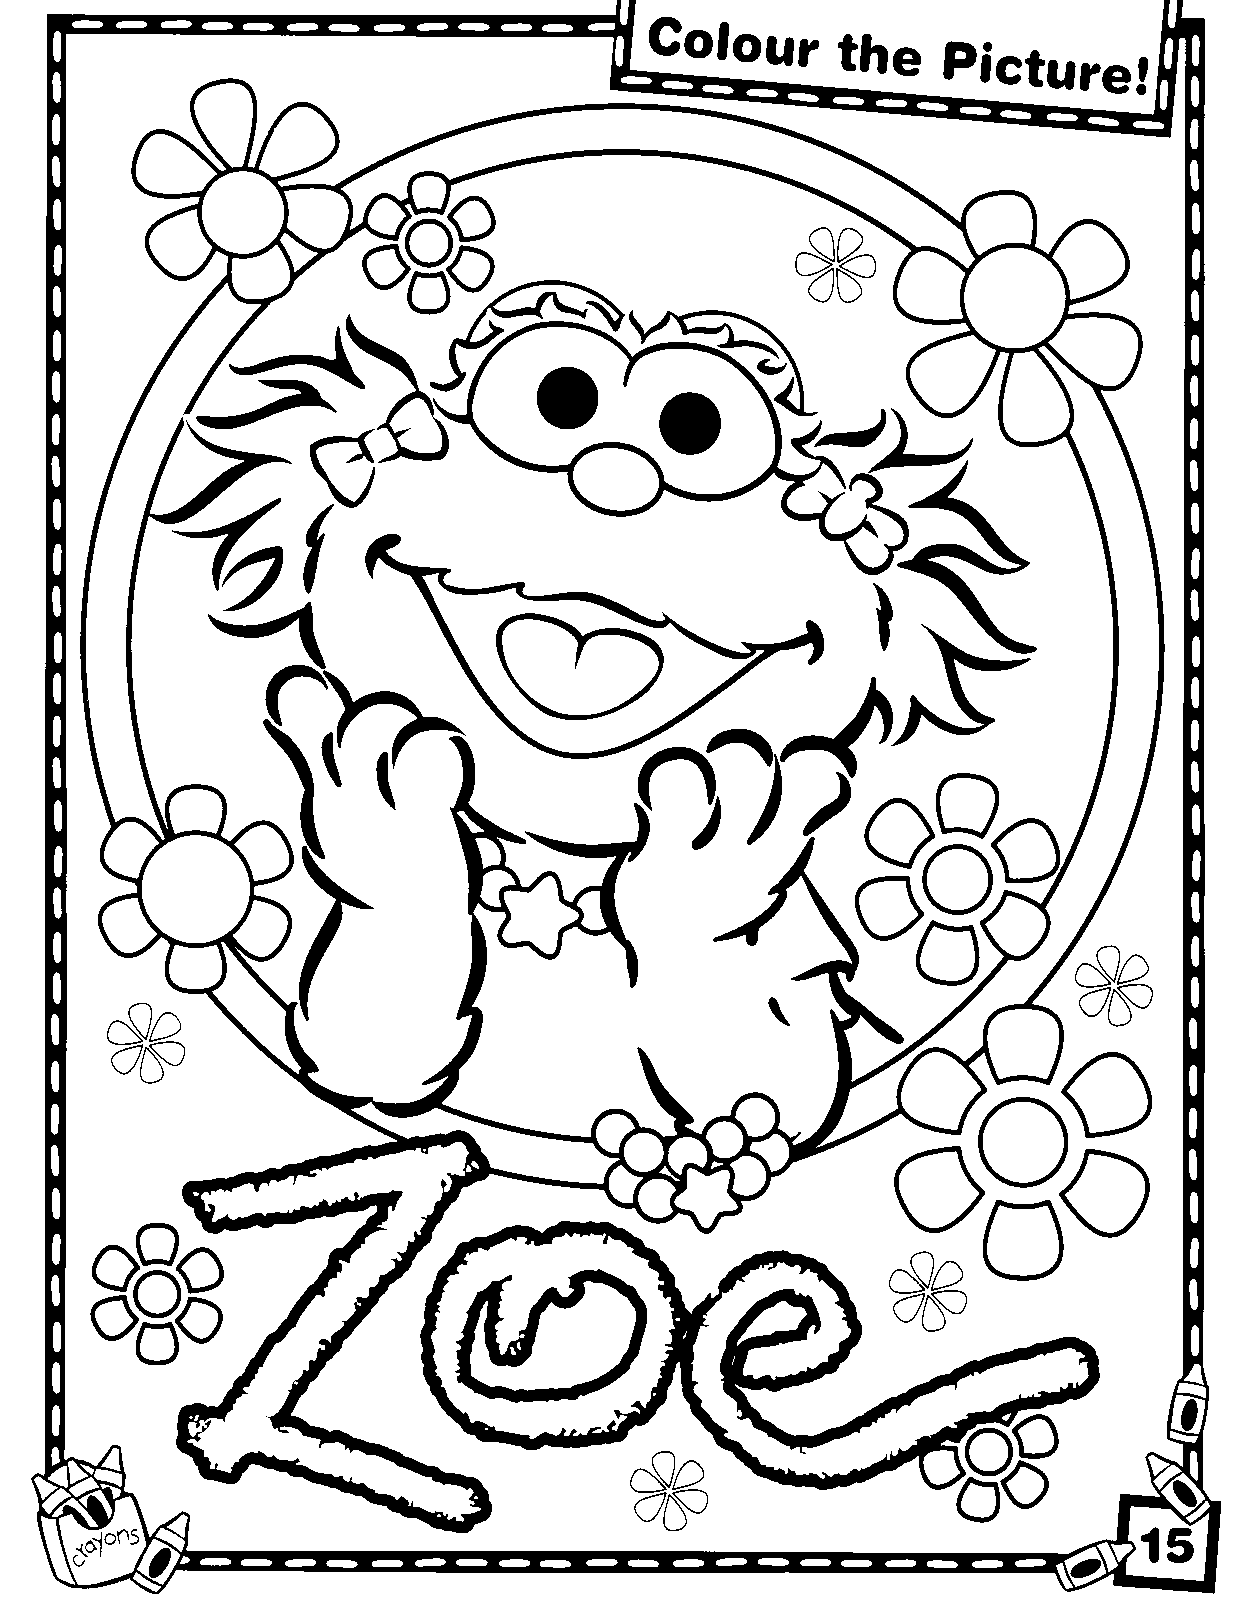 1240x1615 Sesame Street Coloring Pages With Wallpapers High Quality